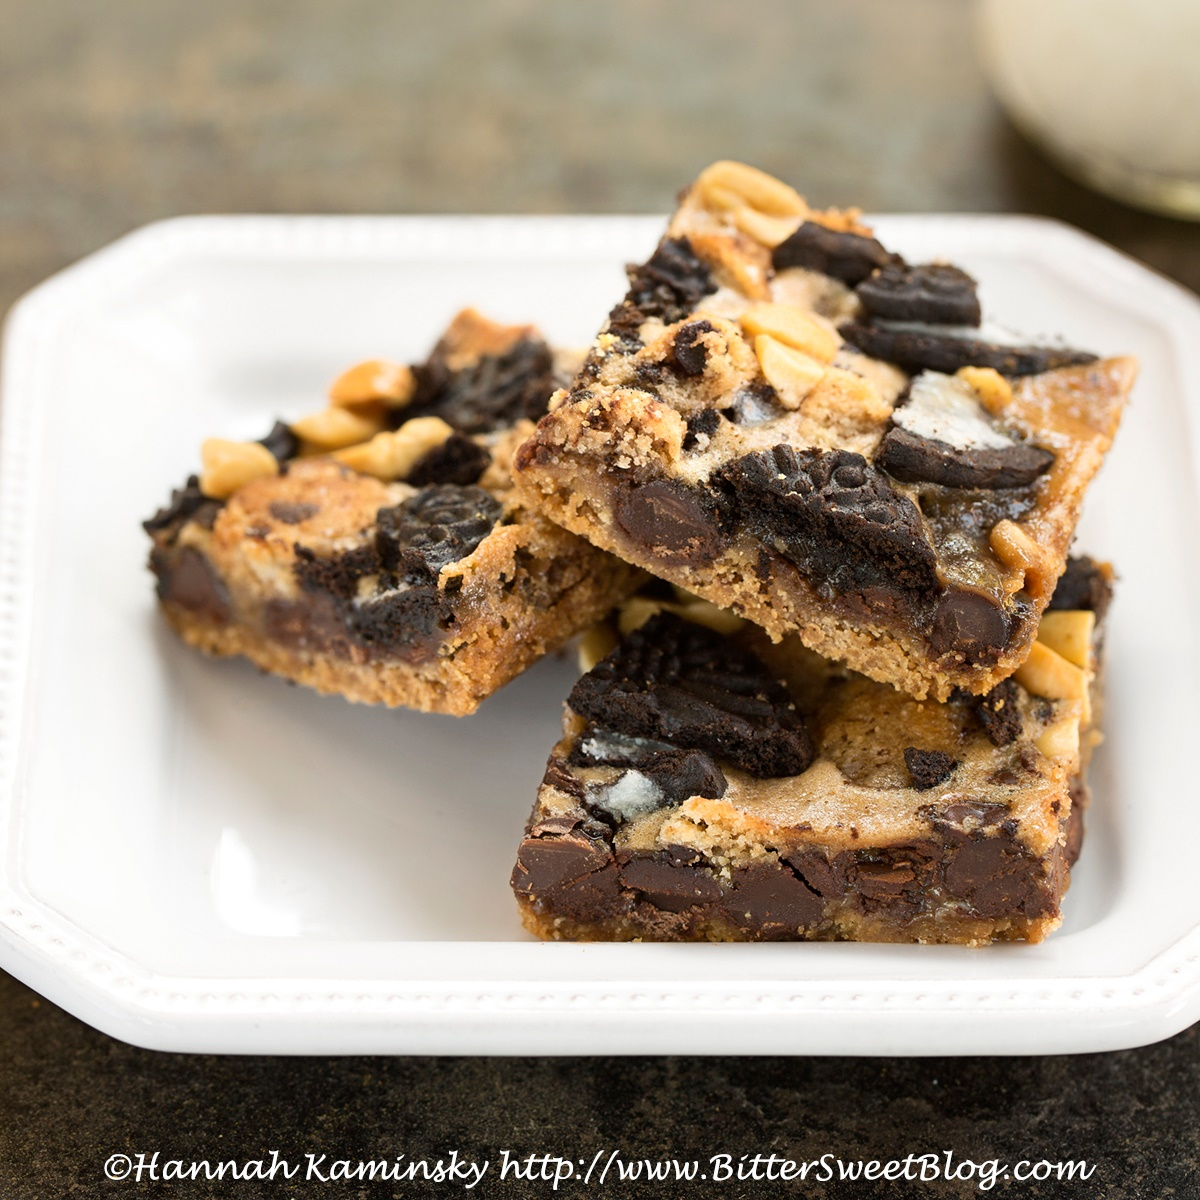 Cashew Milk Dairy Free Frozen Dessert Recipes - Vegan Cookie Monster Magic Bars (pictured)